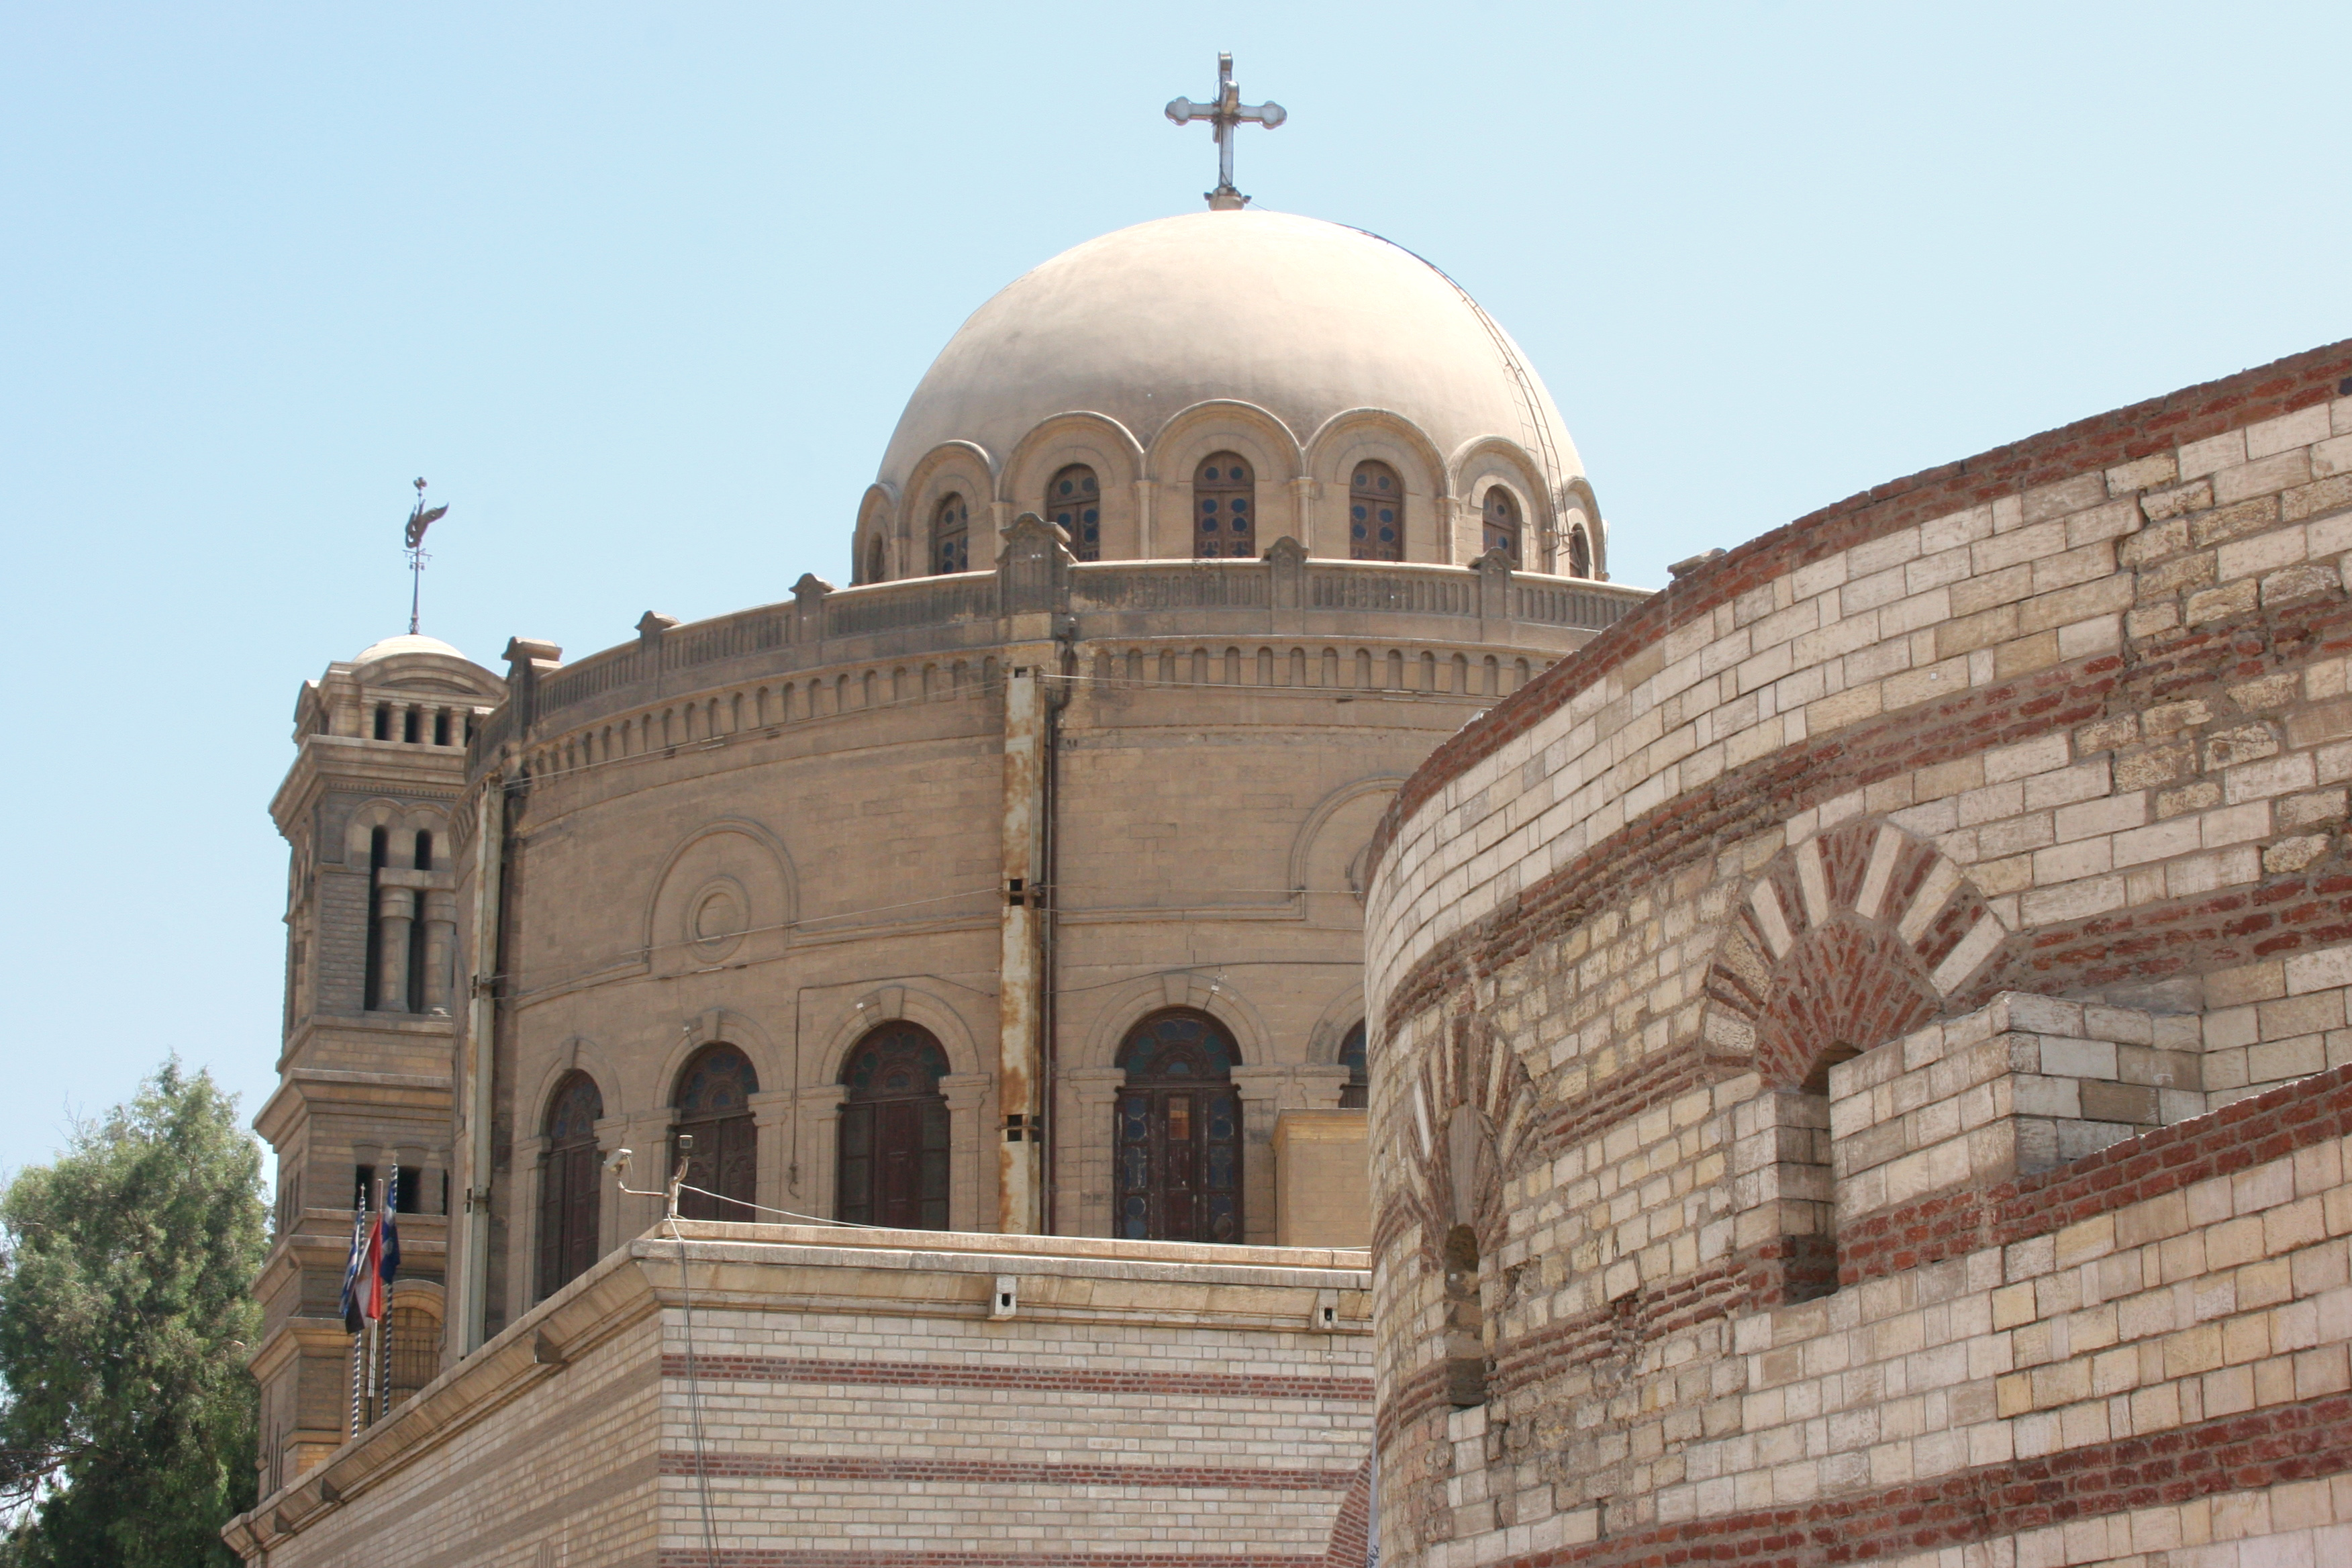 St. George Church in Egypt Partially Burned, Faces Potential Rebuild Barriers